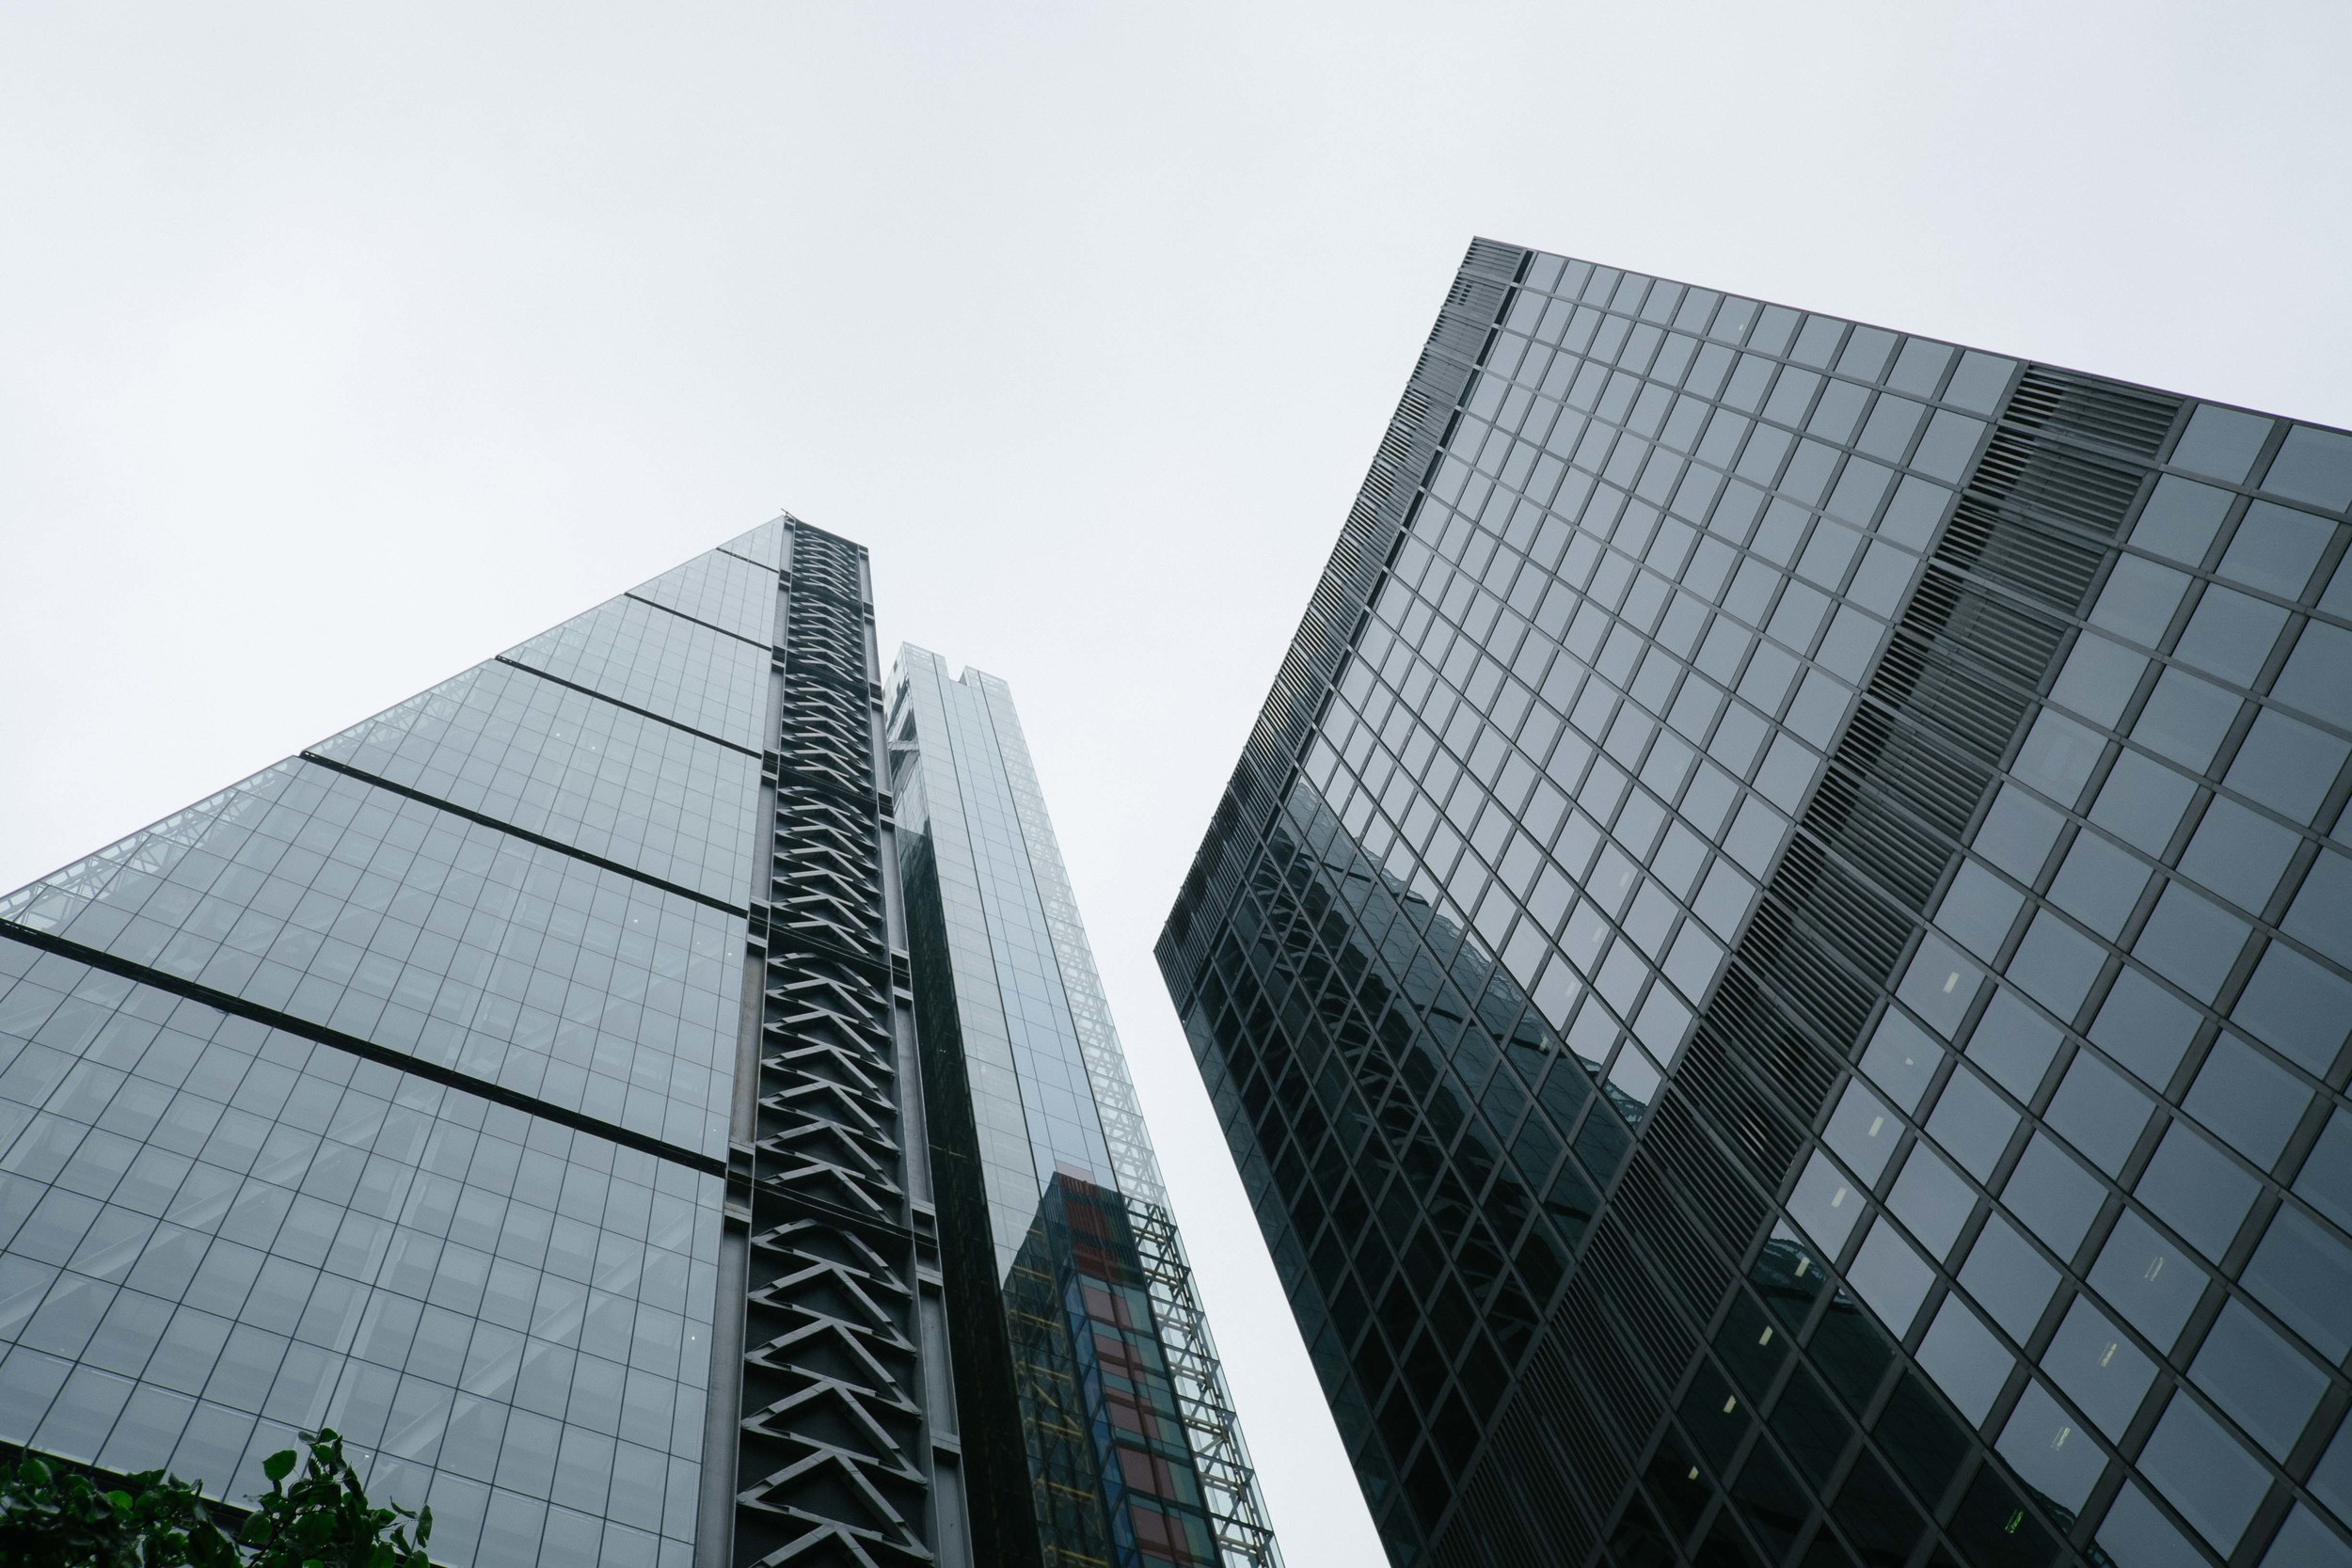 Leadenhall Building (The Cheesegrater)